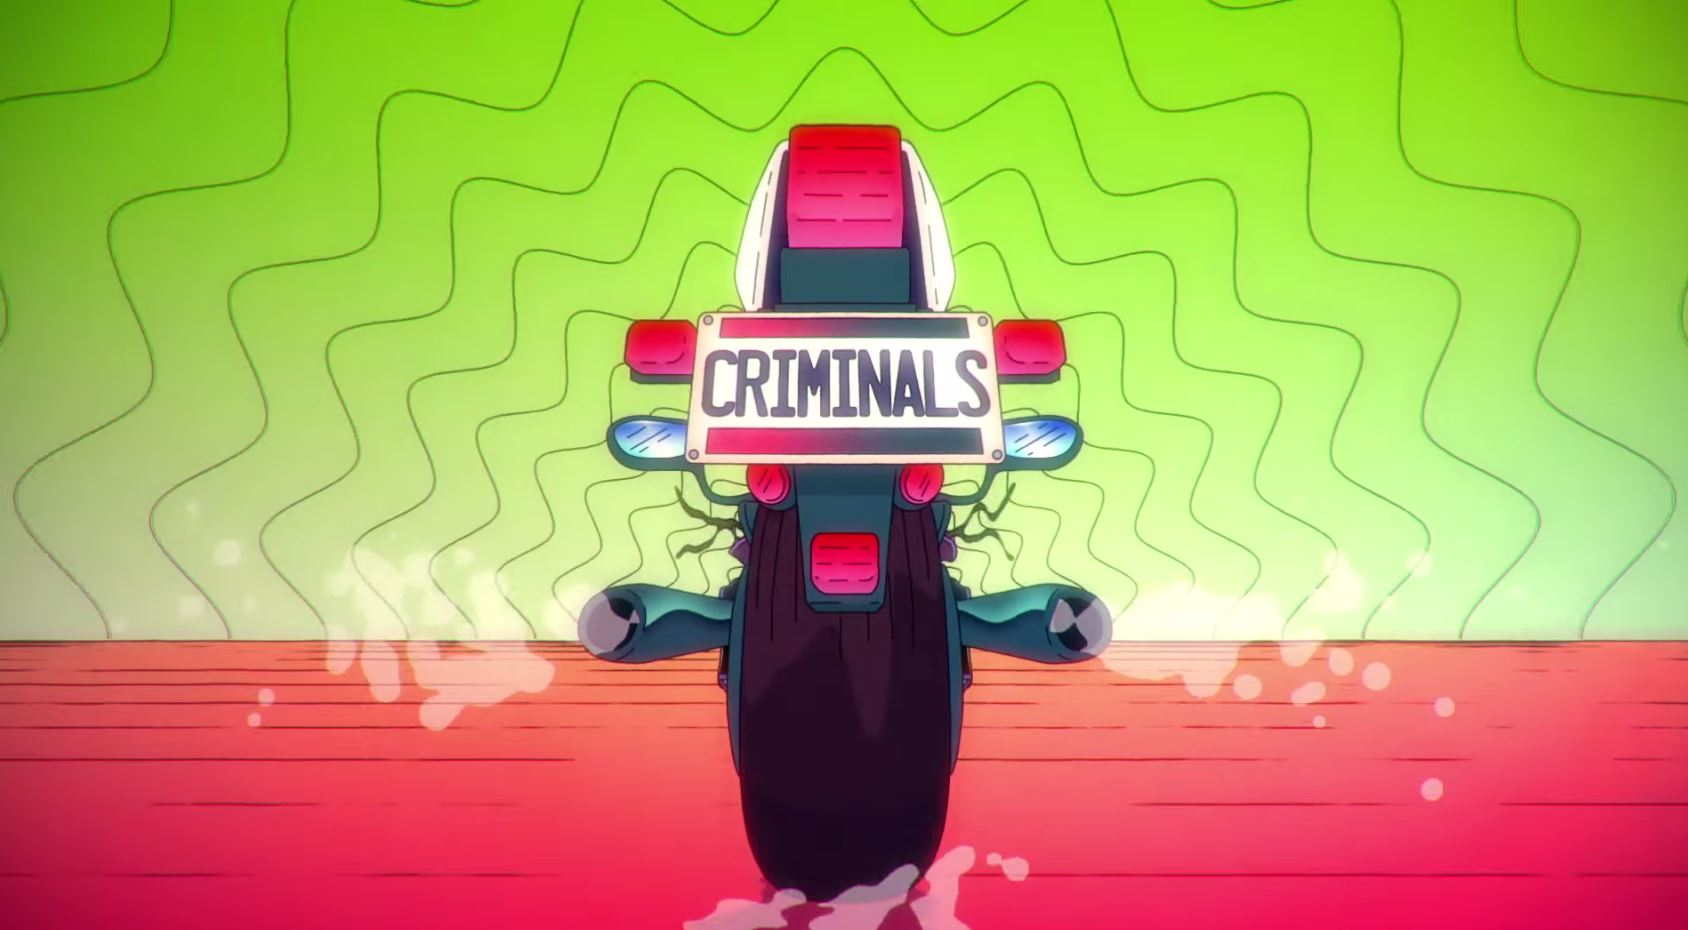 MSMR - Criminals via YouTube screen cap